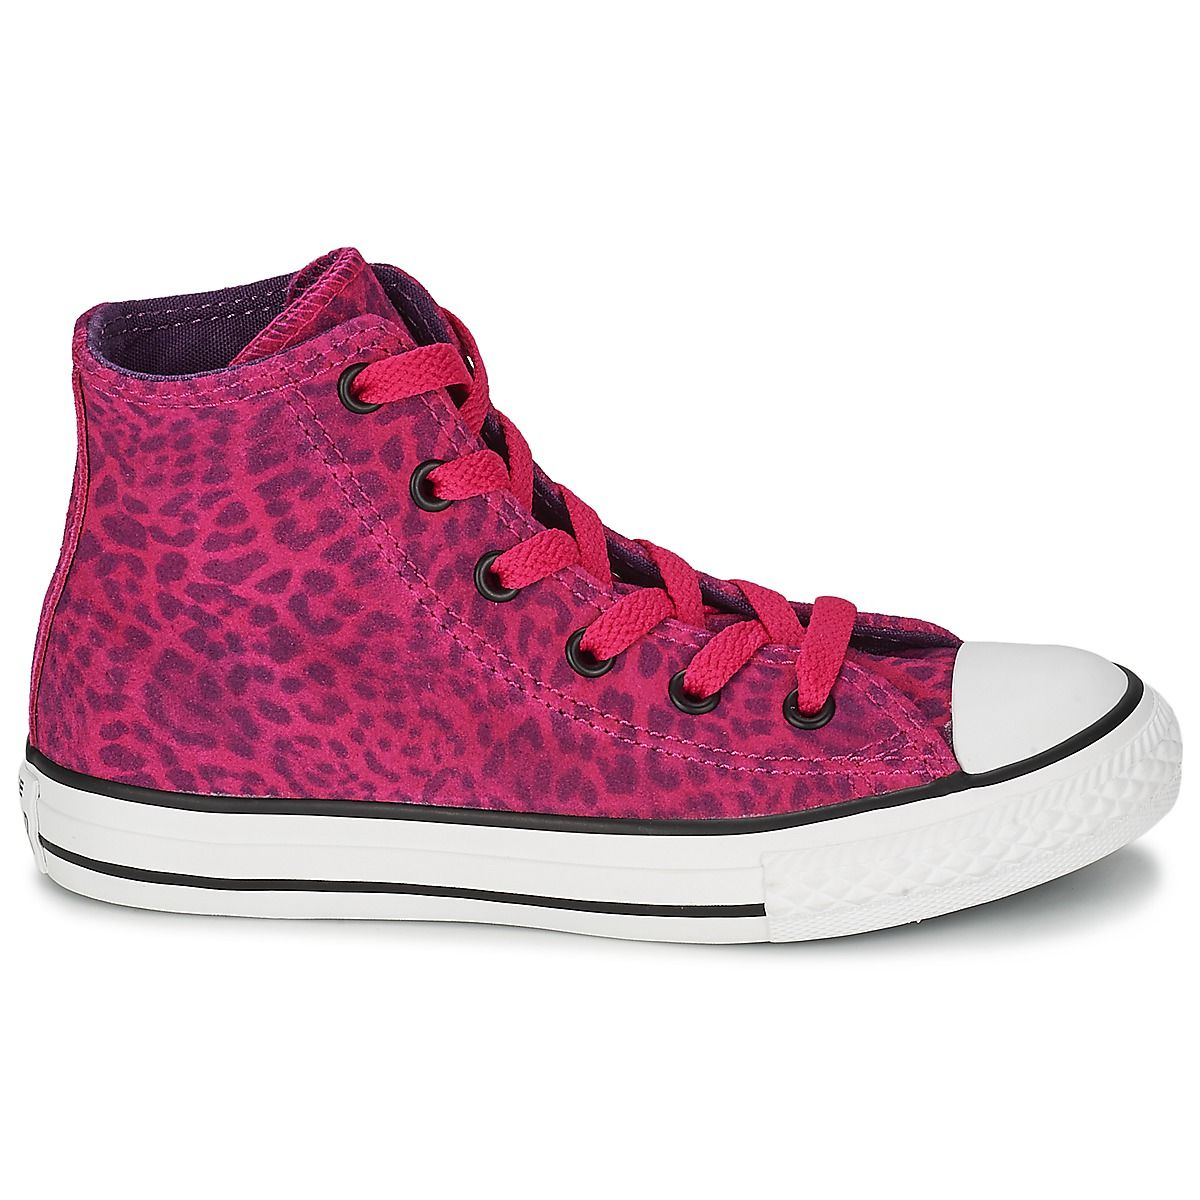 eb24d744ce24 Girls love Converse and these hot pink leopard print ones are no exception!   shoes  converse  girls  kids  children  trainers  uk